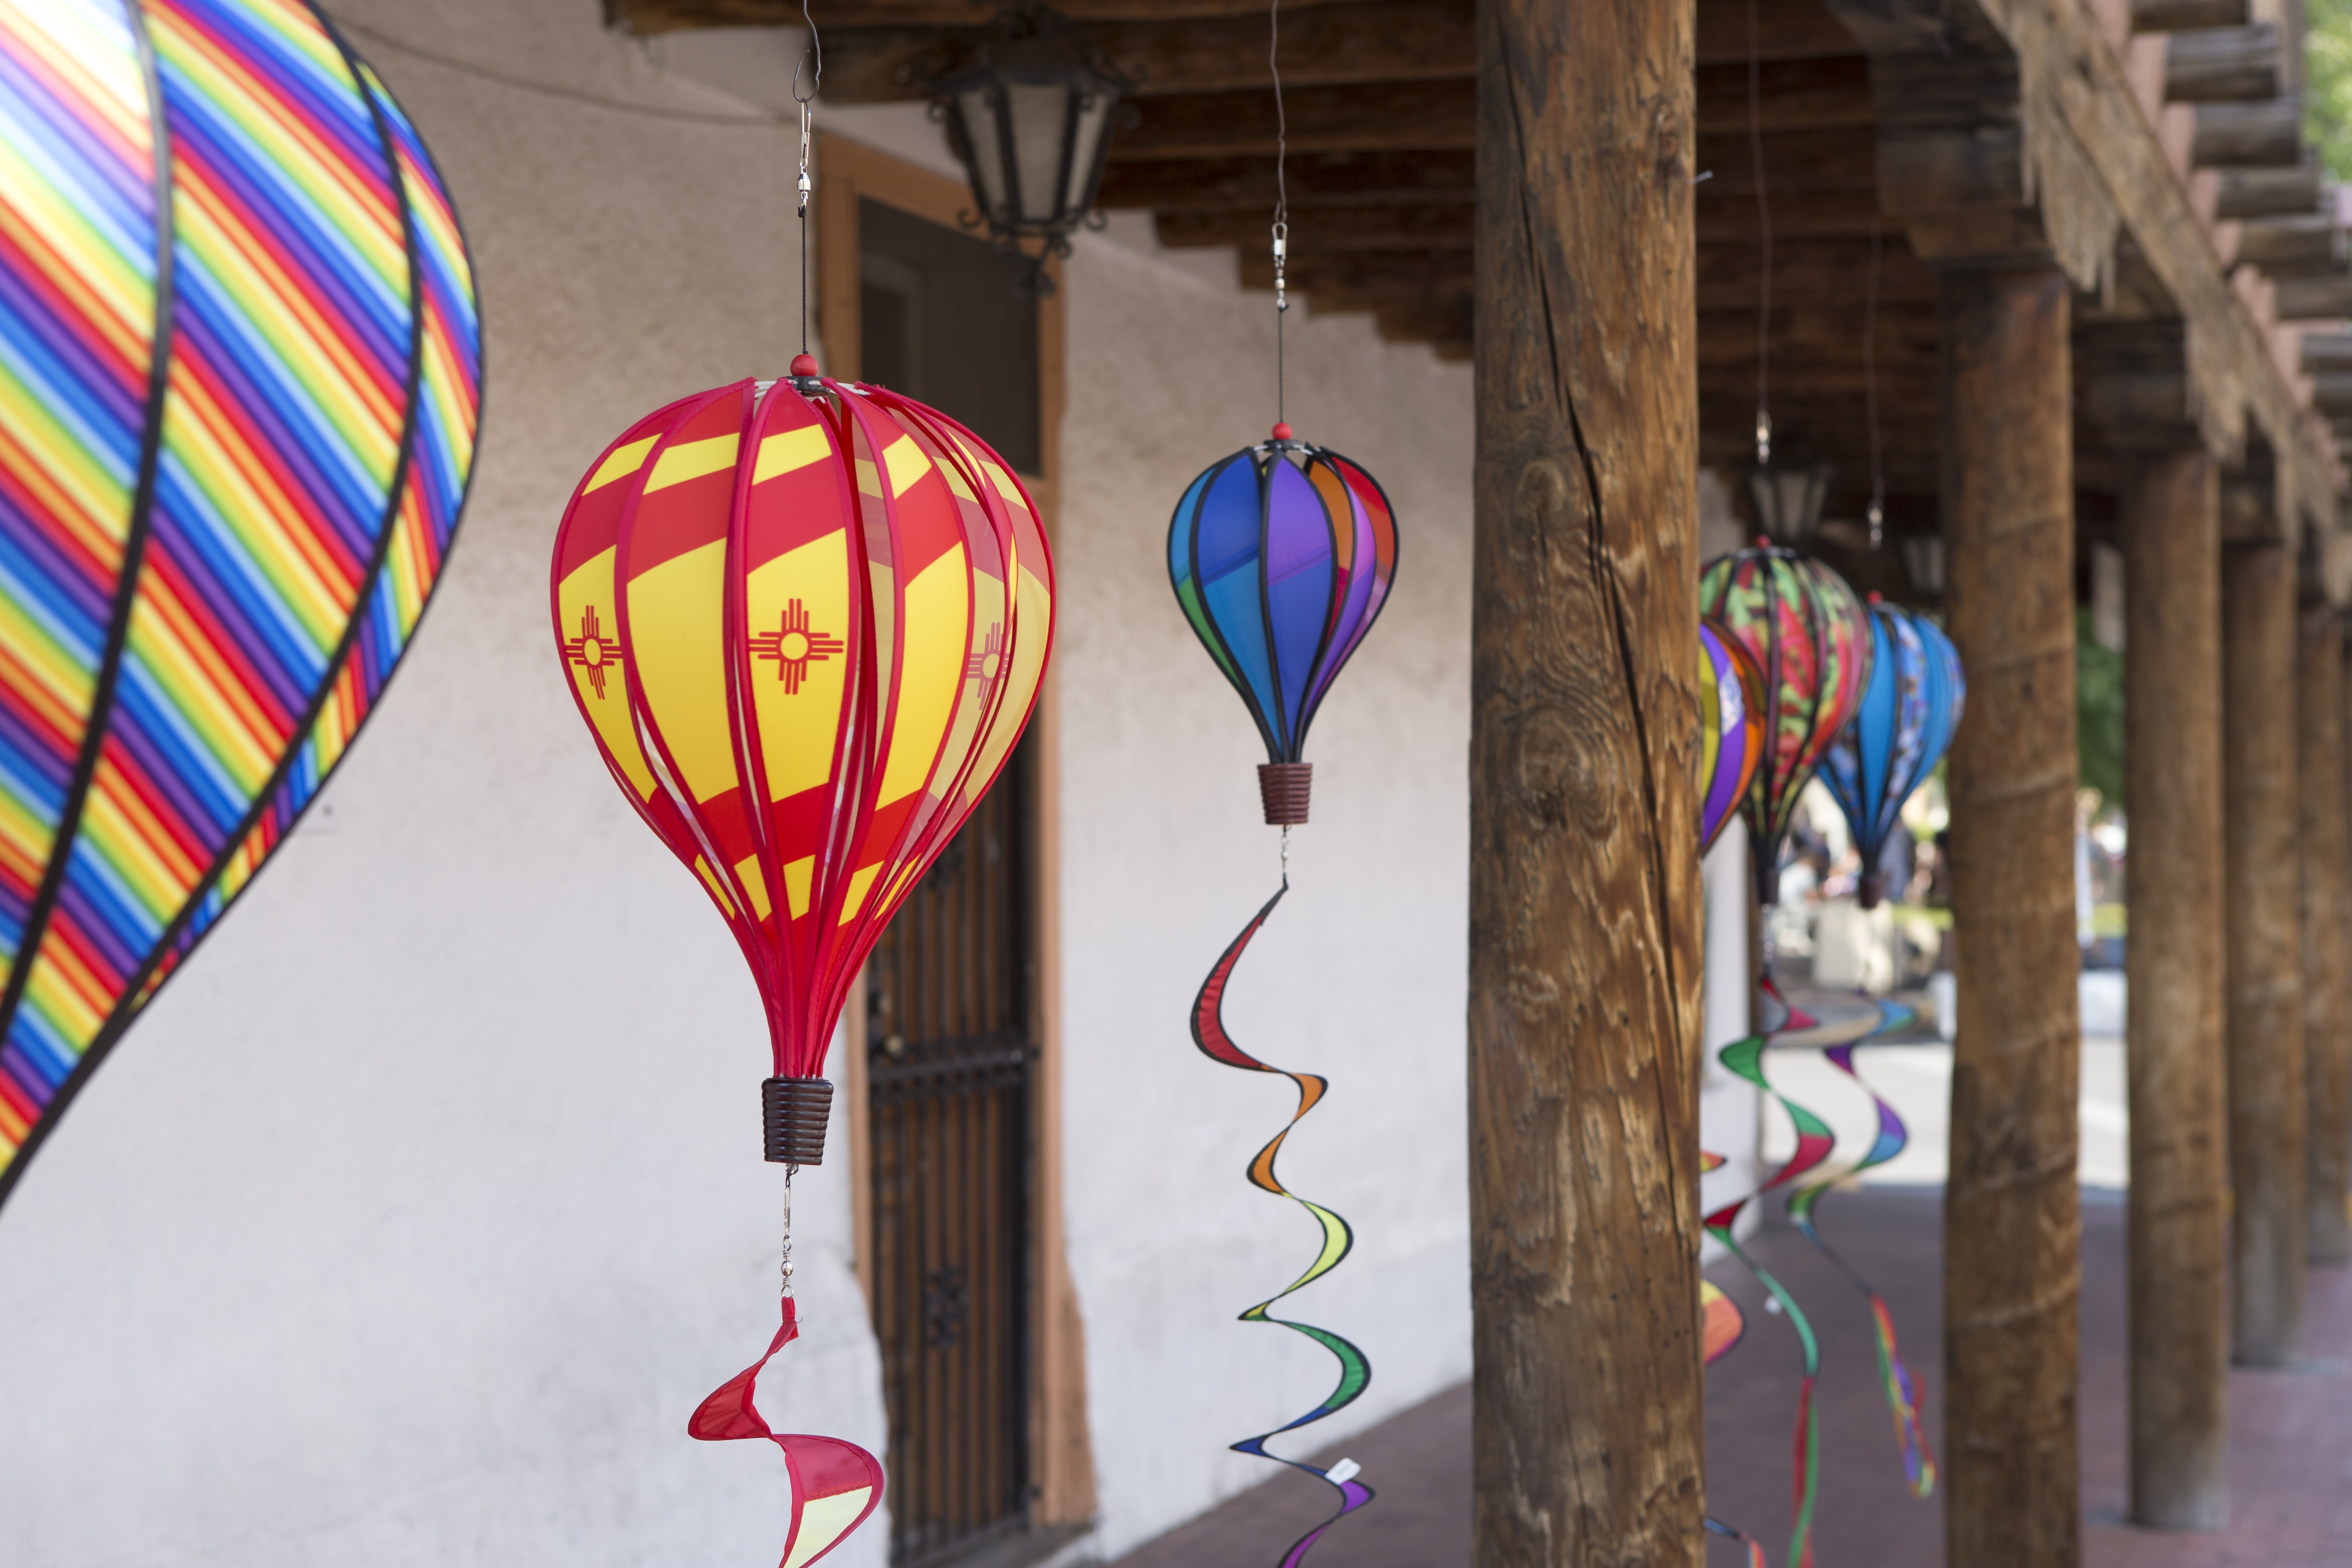 Balloon Fiesta Week in Old Town